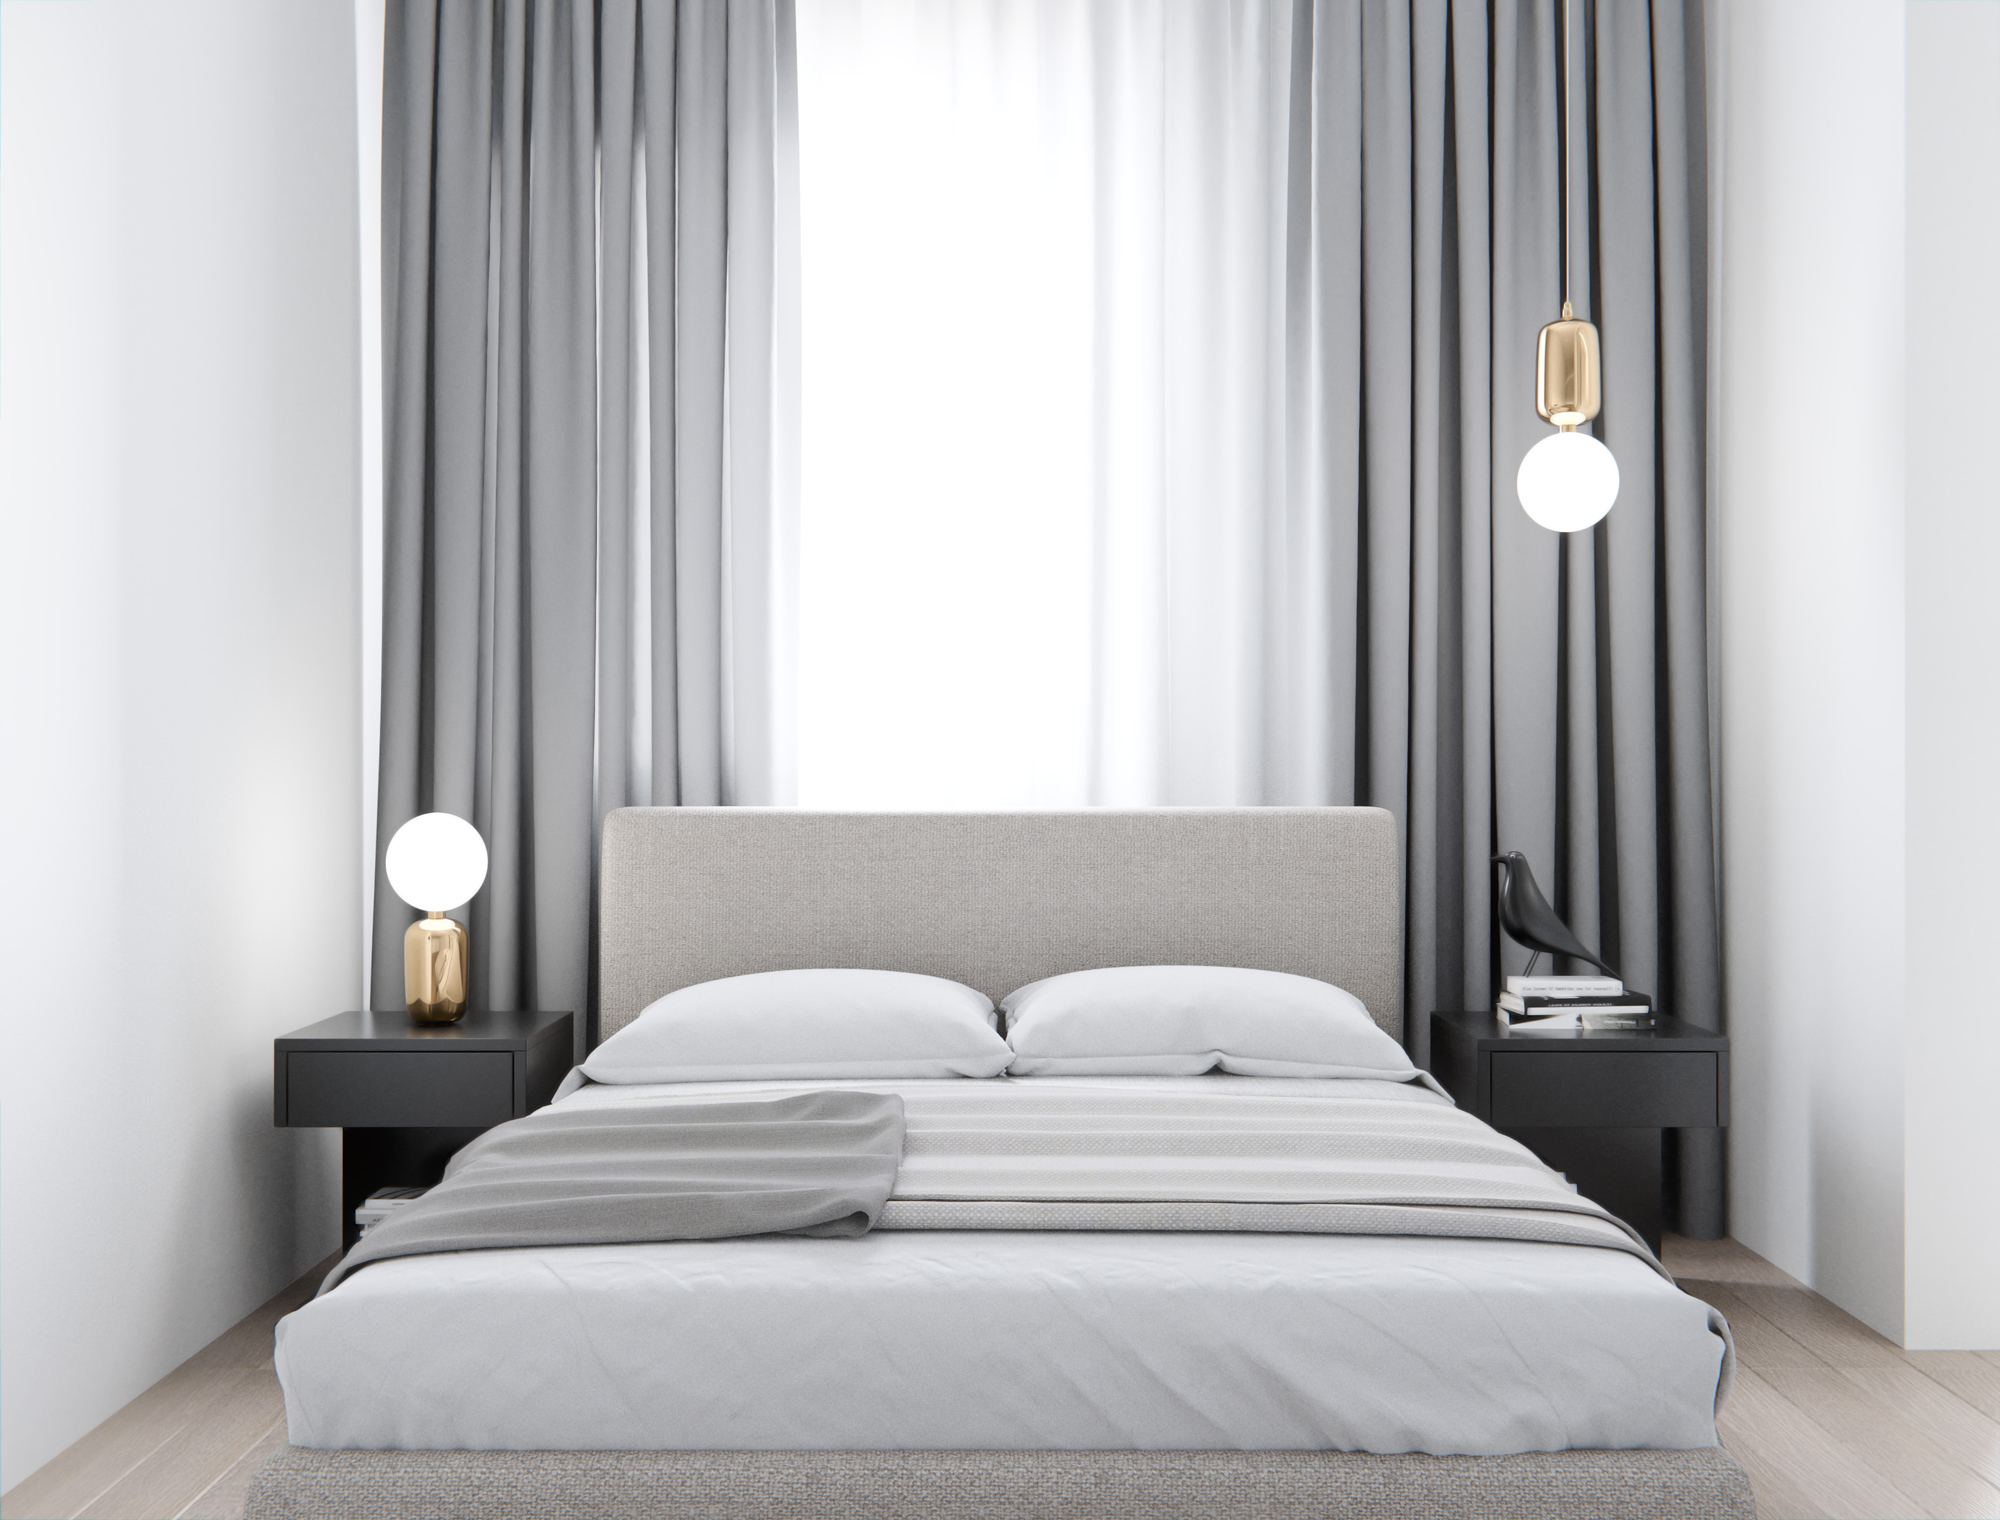 Bedroom Ideas 52 Modern Design Ideas For Your Bedroom The Luxpad in Modern Bedroom Decor